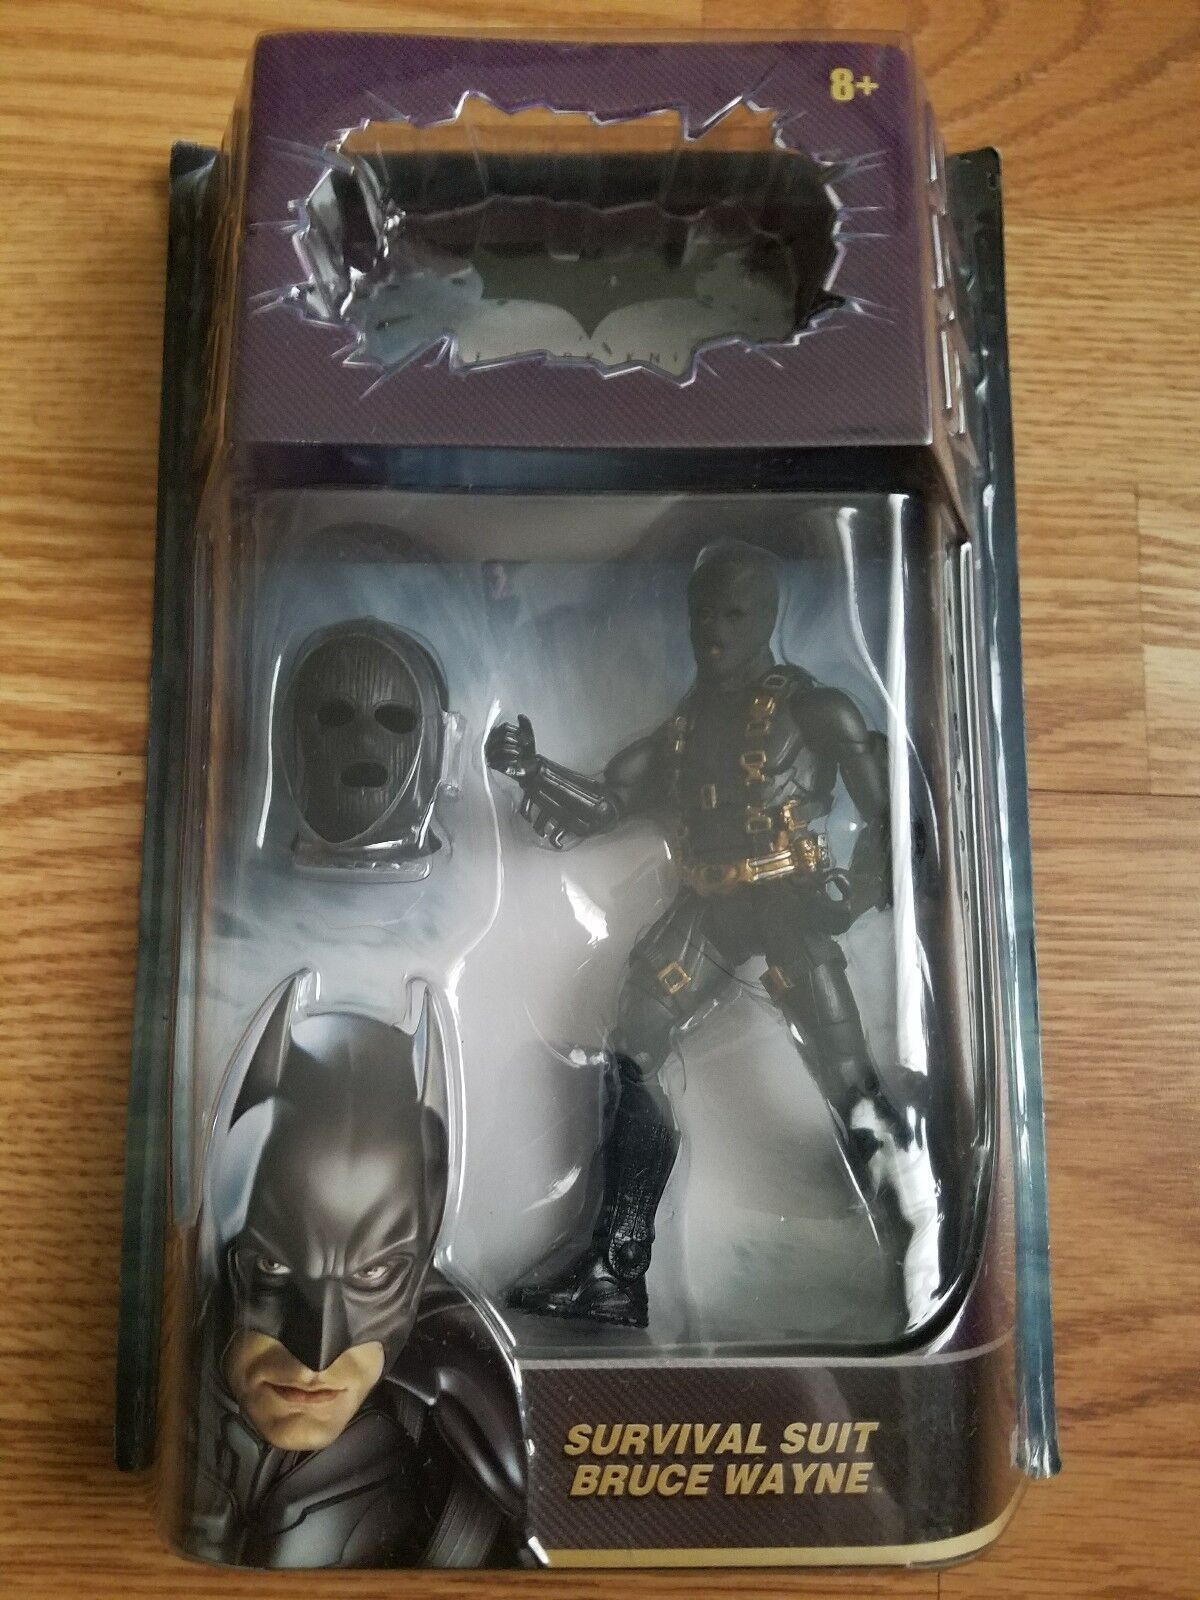 DARK KNIGHT Bruce Wayne Survival Suit 6  action figure MOVIE MASTERS DC UNIVERSE